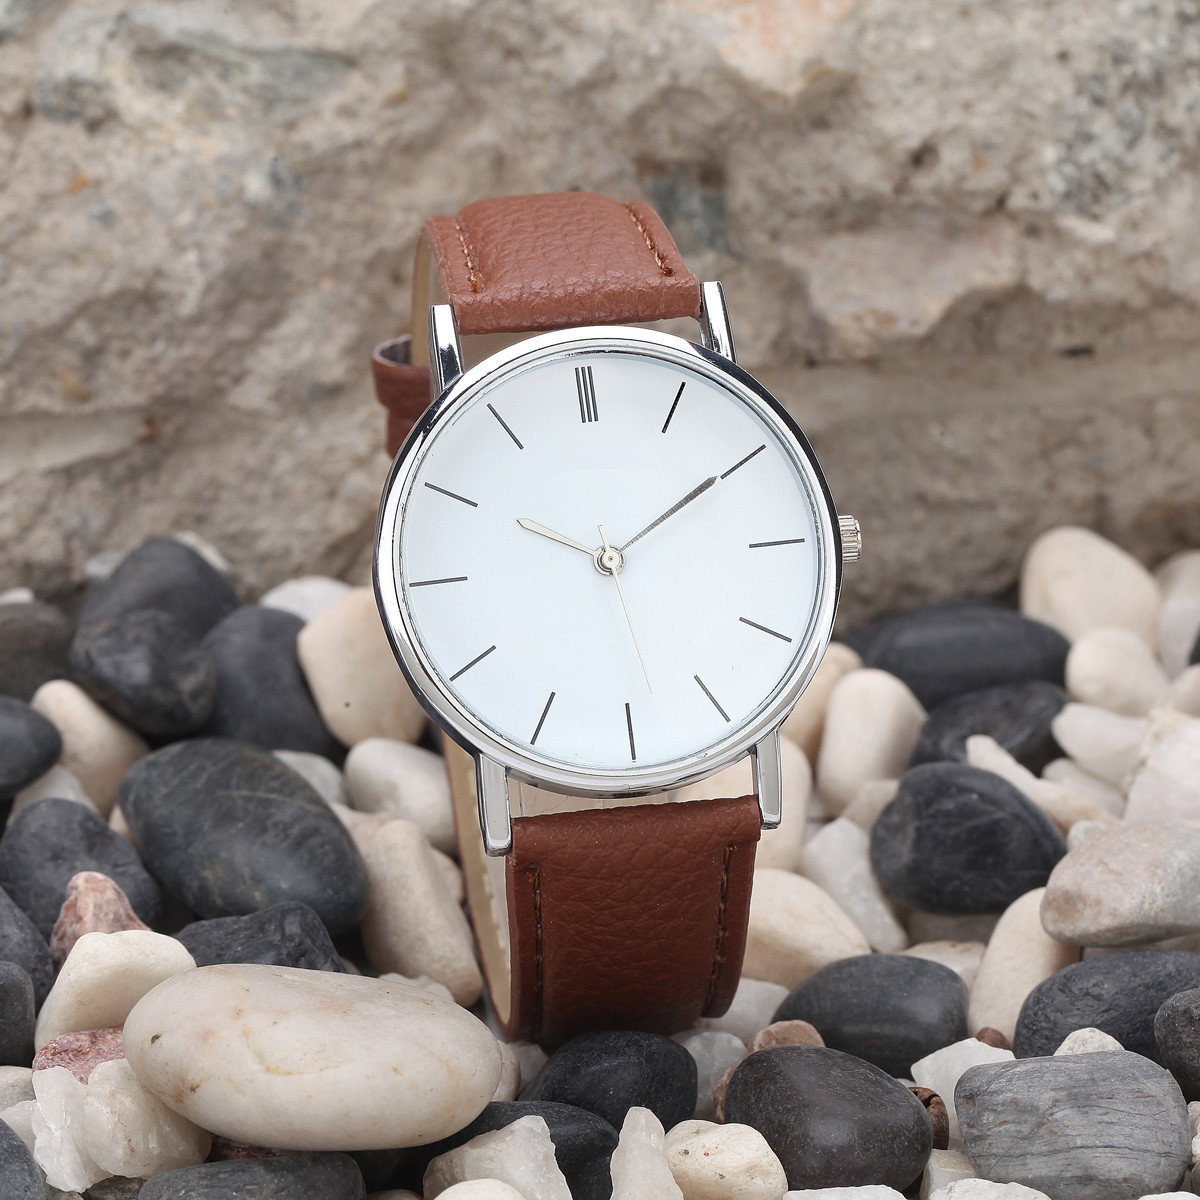 Hot Sale Fabulous 1pc Women watches Retro Design Leather Band simple design Analog Alloy Quartz Wrist watch women relogio #07 fabulous 1pc new women watches retro design leather band simple design hot style analog alloy quartz wrist watch women relogio